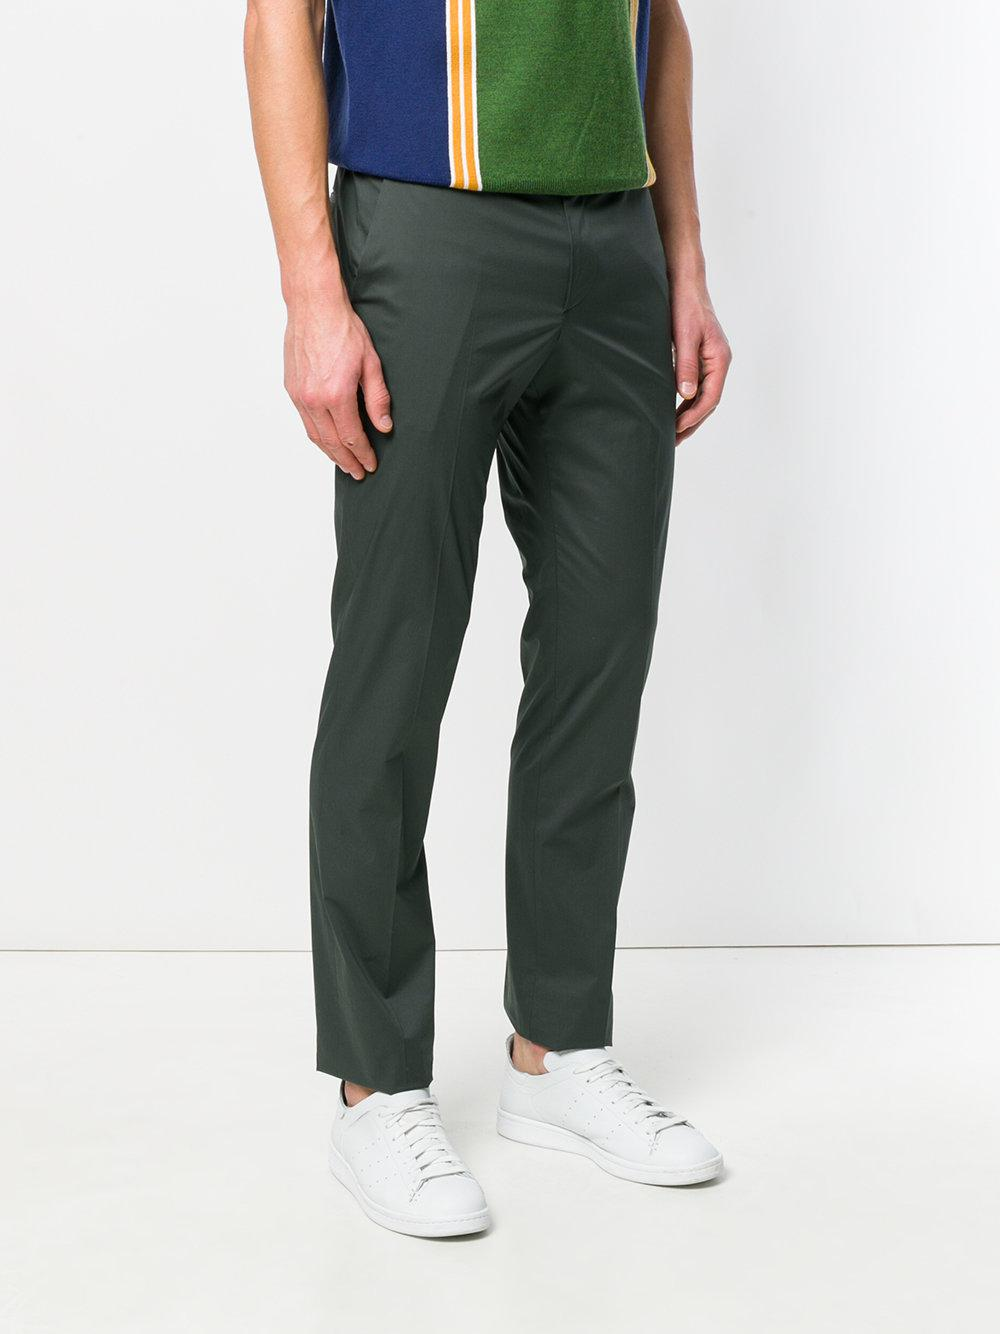 PS by Paul Smith Cotton Tailored Trousers in Green for Men